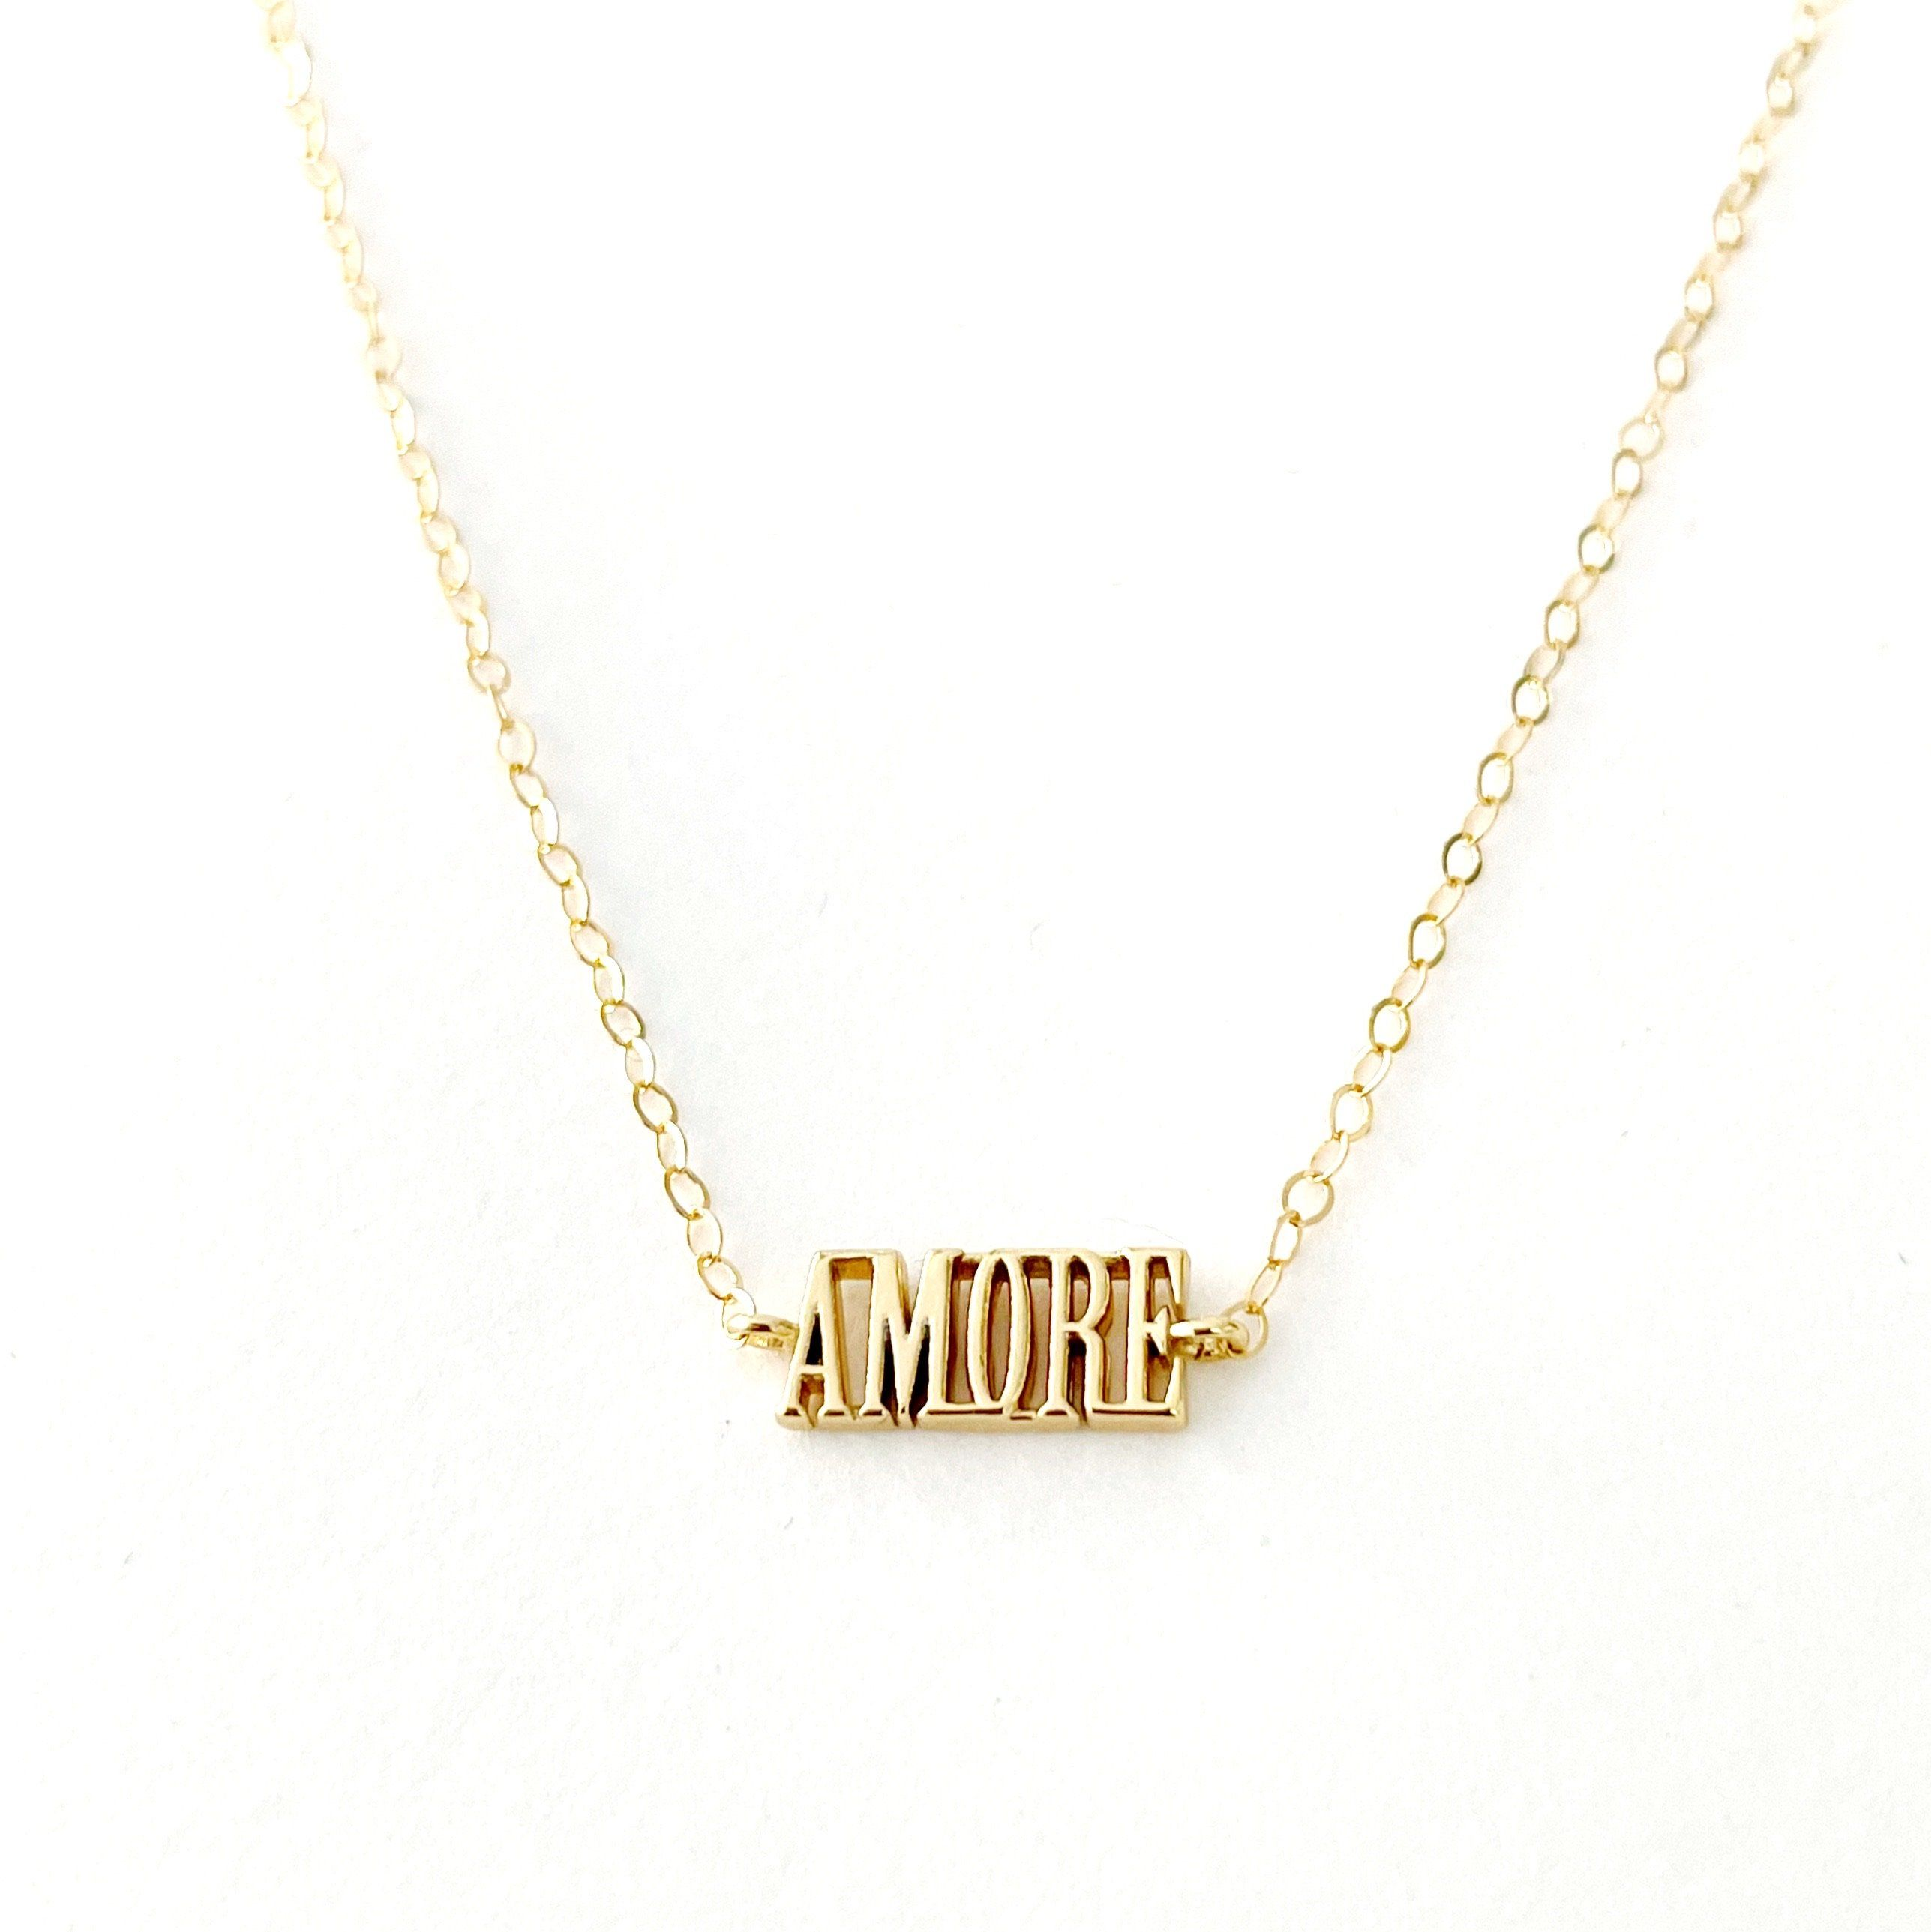 This dainty block letter necklace says love in Italian. Makes a lovely gift or wear it yourself as the perfect everyday necklace. -Gold filled chain measures 18 inches long -Spring ring clasp -Made in California